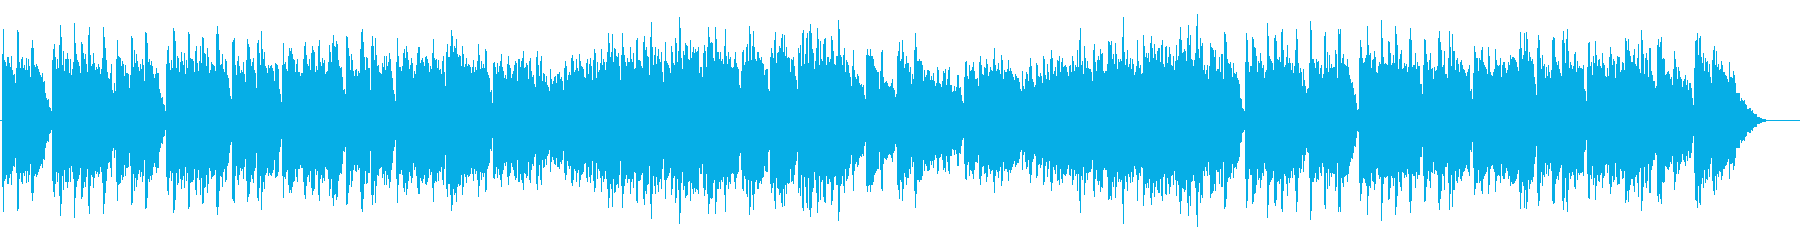 Wedding song style BGM luxurious and solemn's reproduced waveform